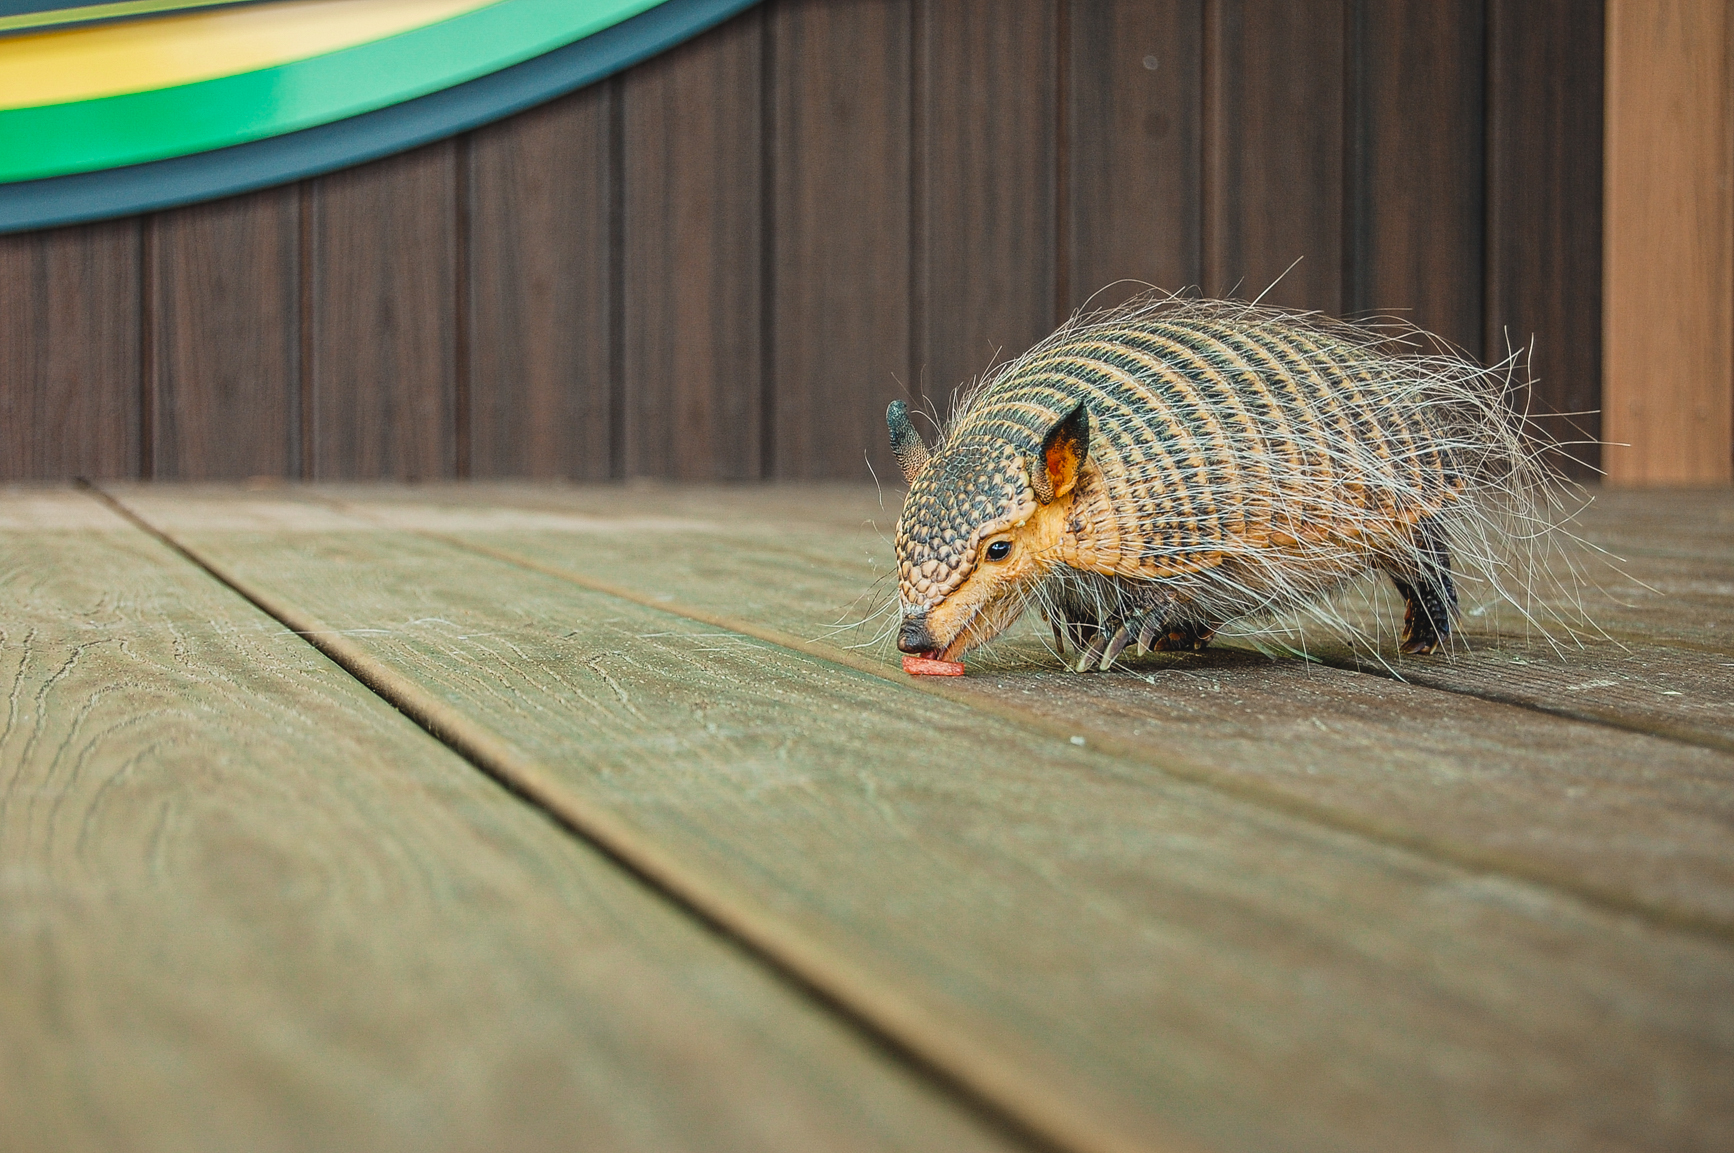 The Hairy Armadillo makes his appearance at the Virginia Zoo